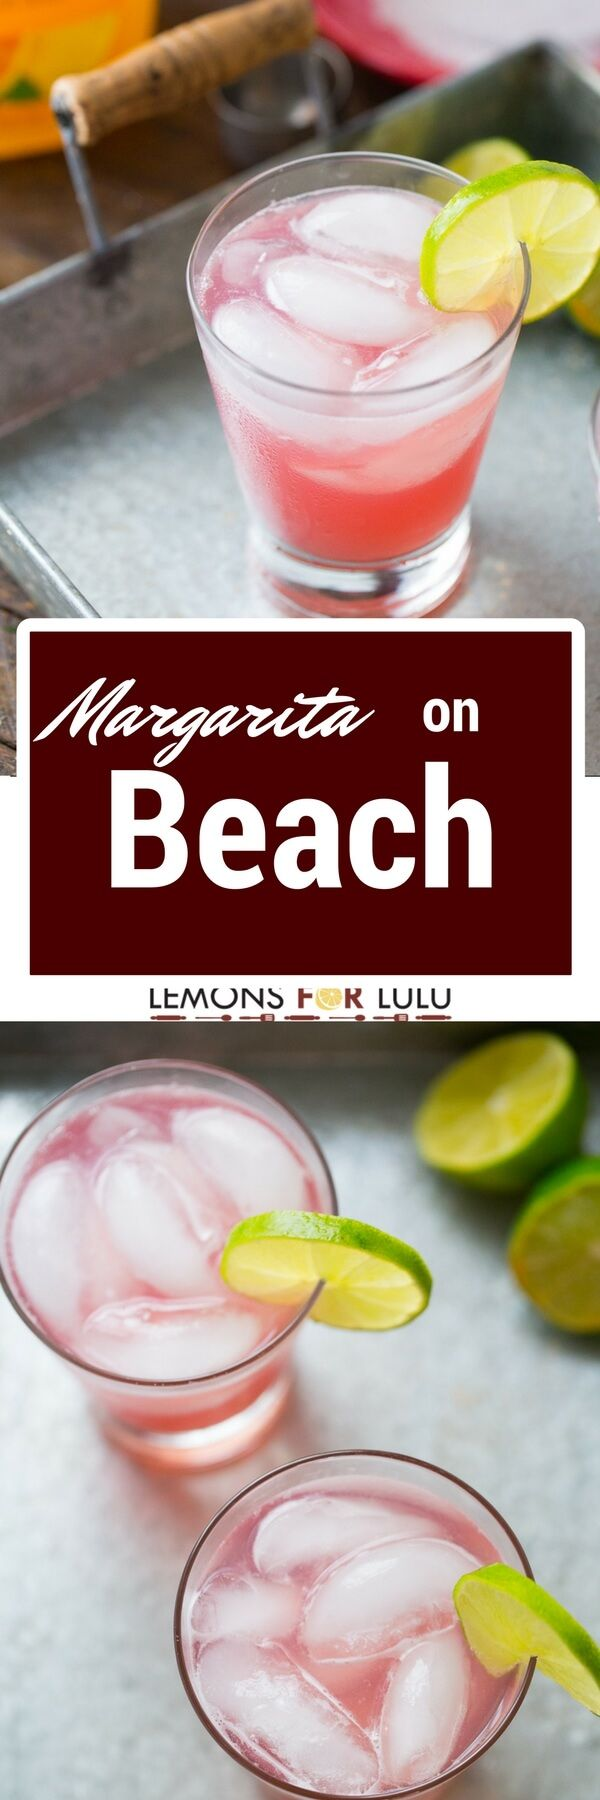 This margarita on the beach is the combination of sex on the beach and a classic margarita! Two drinks in one!